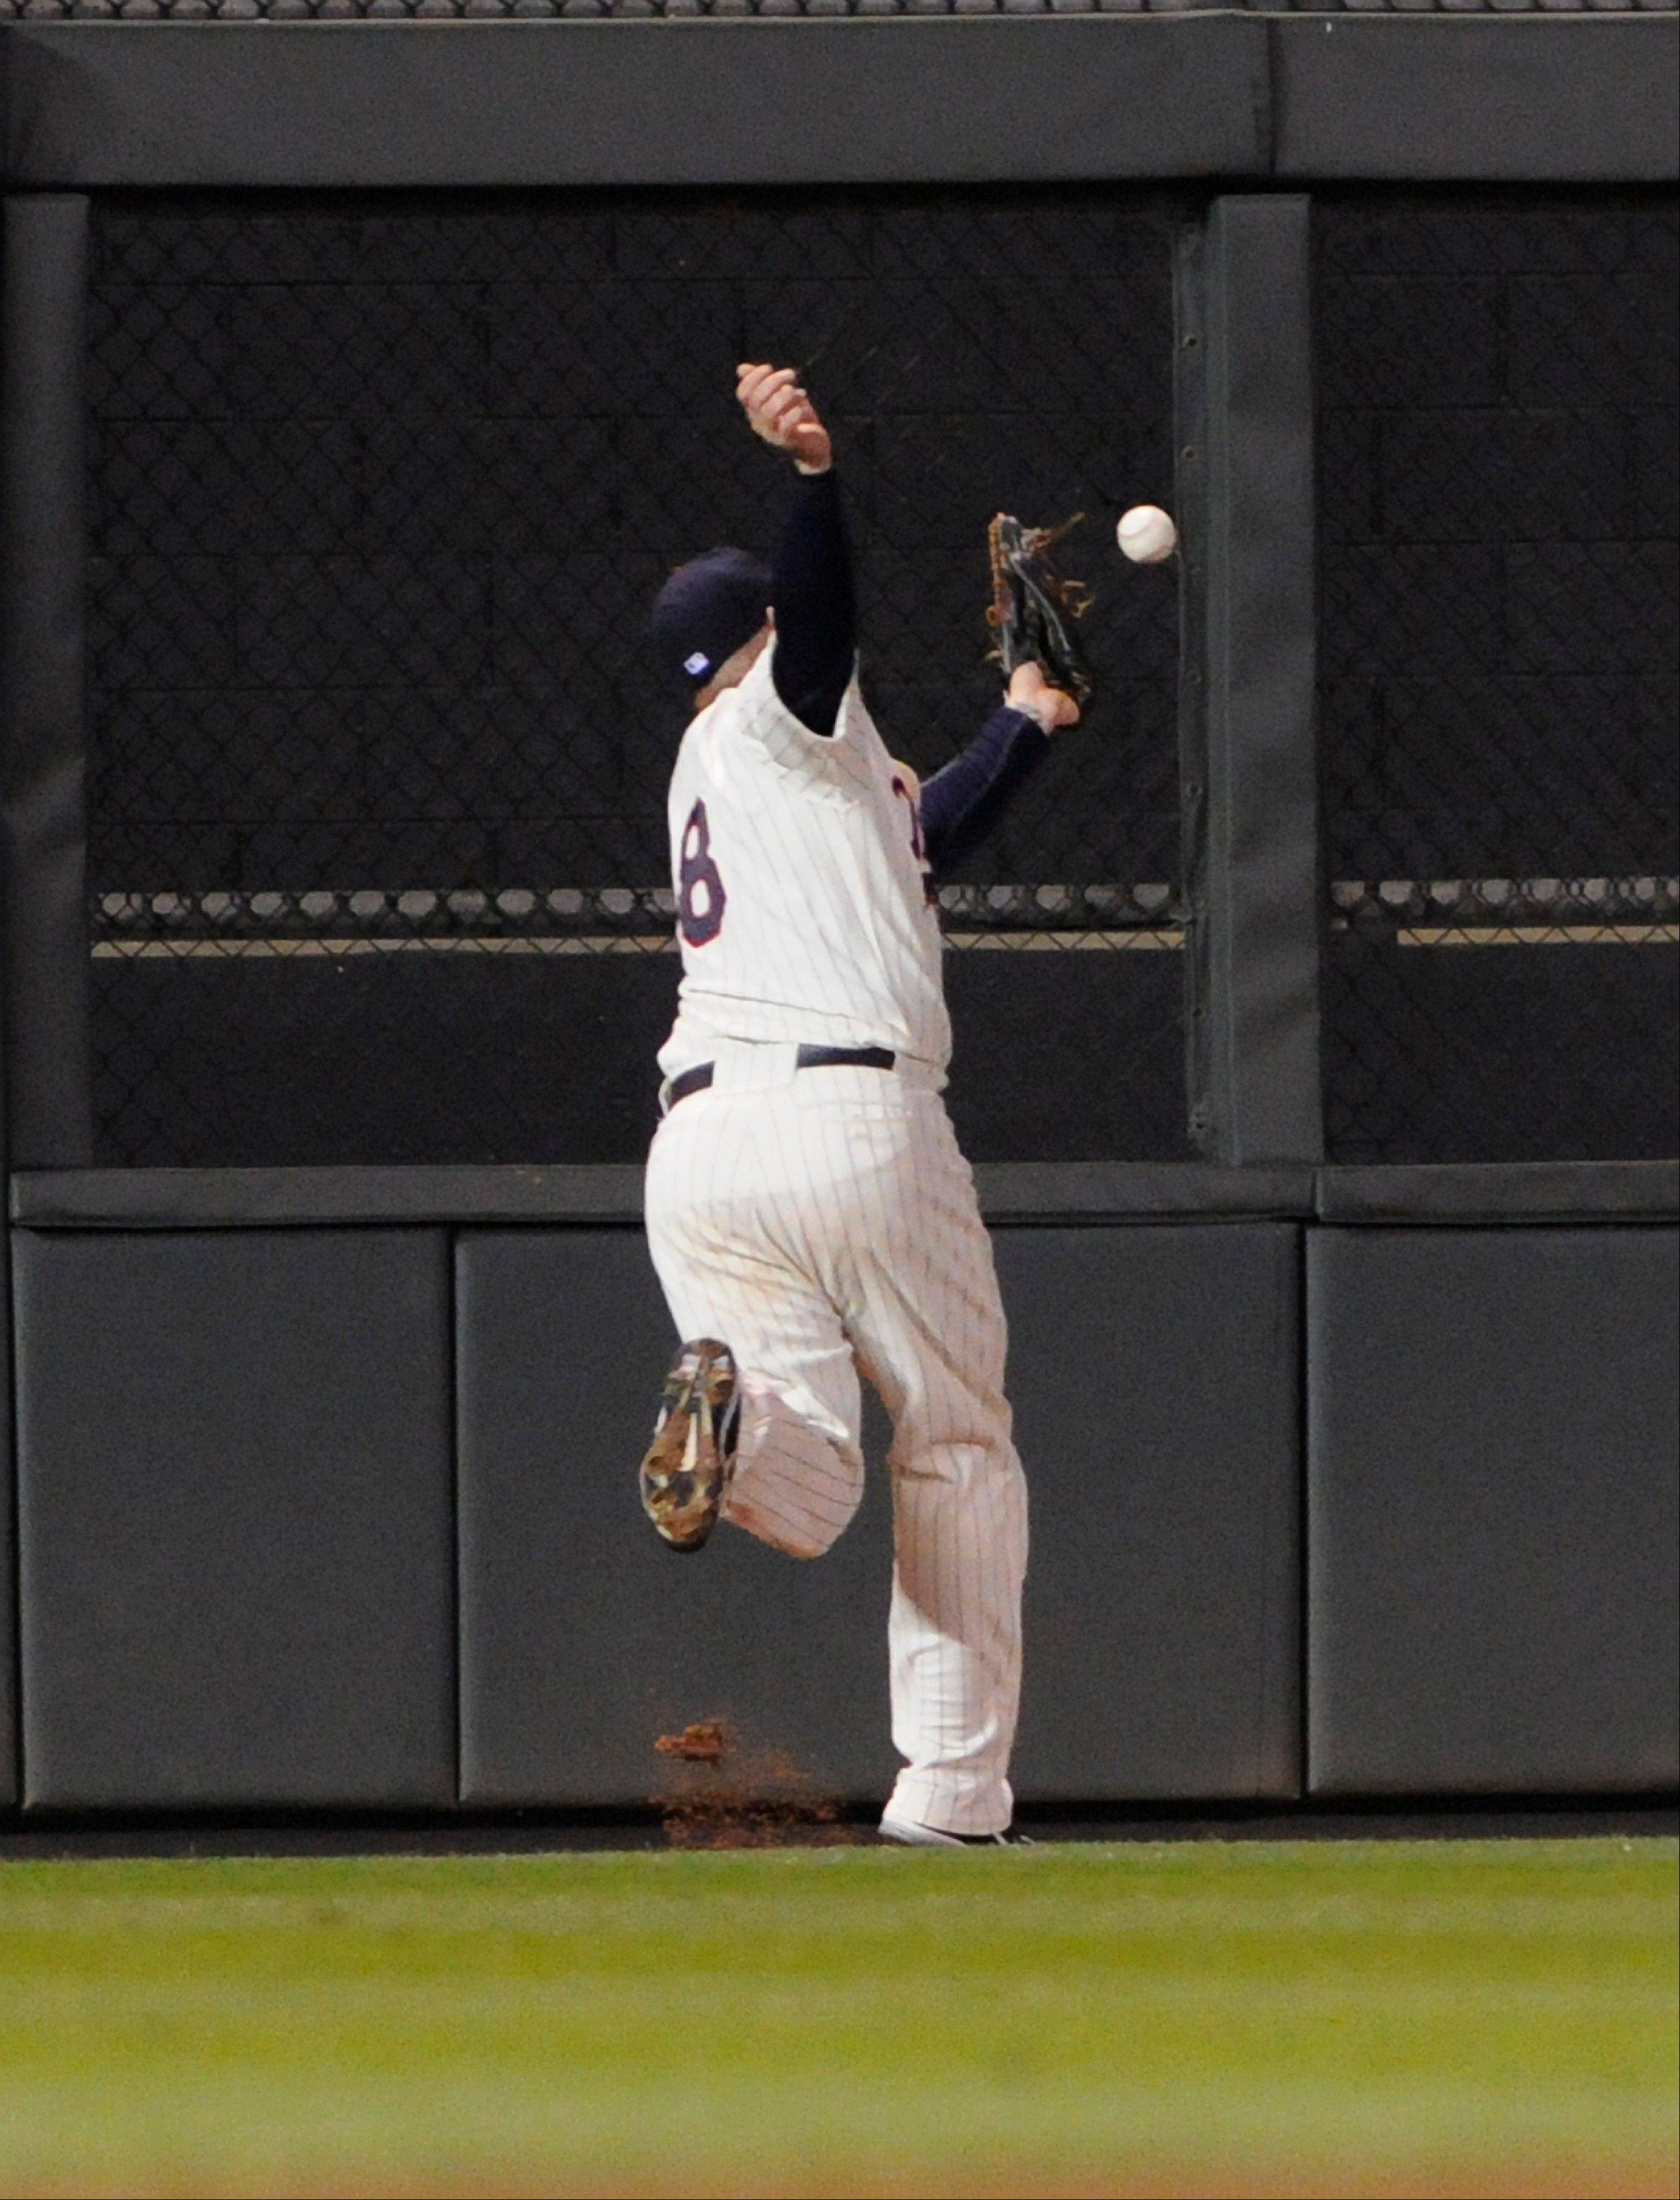 Minnesota Twins left fielder Ryan Doumit commits an error on a ball hit by Kansas City's Johnny Giavotella in the eighth inning Wednesday at home.